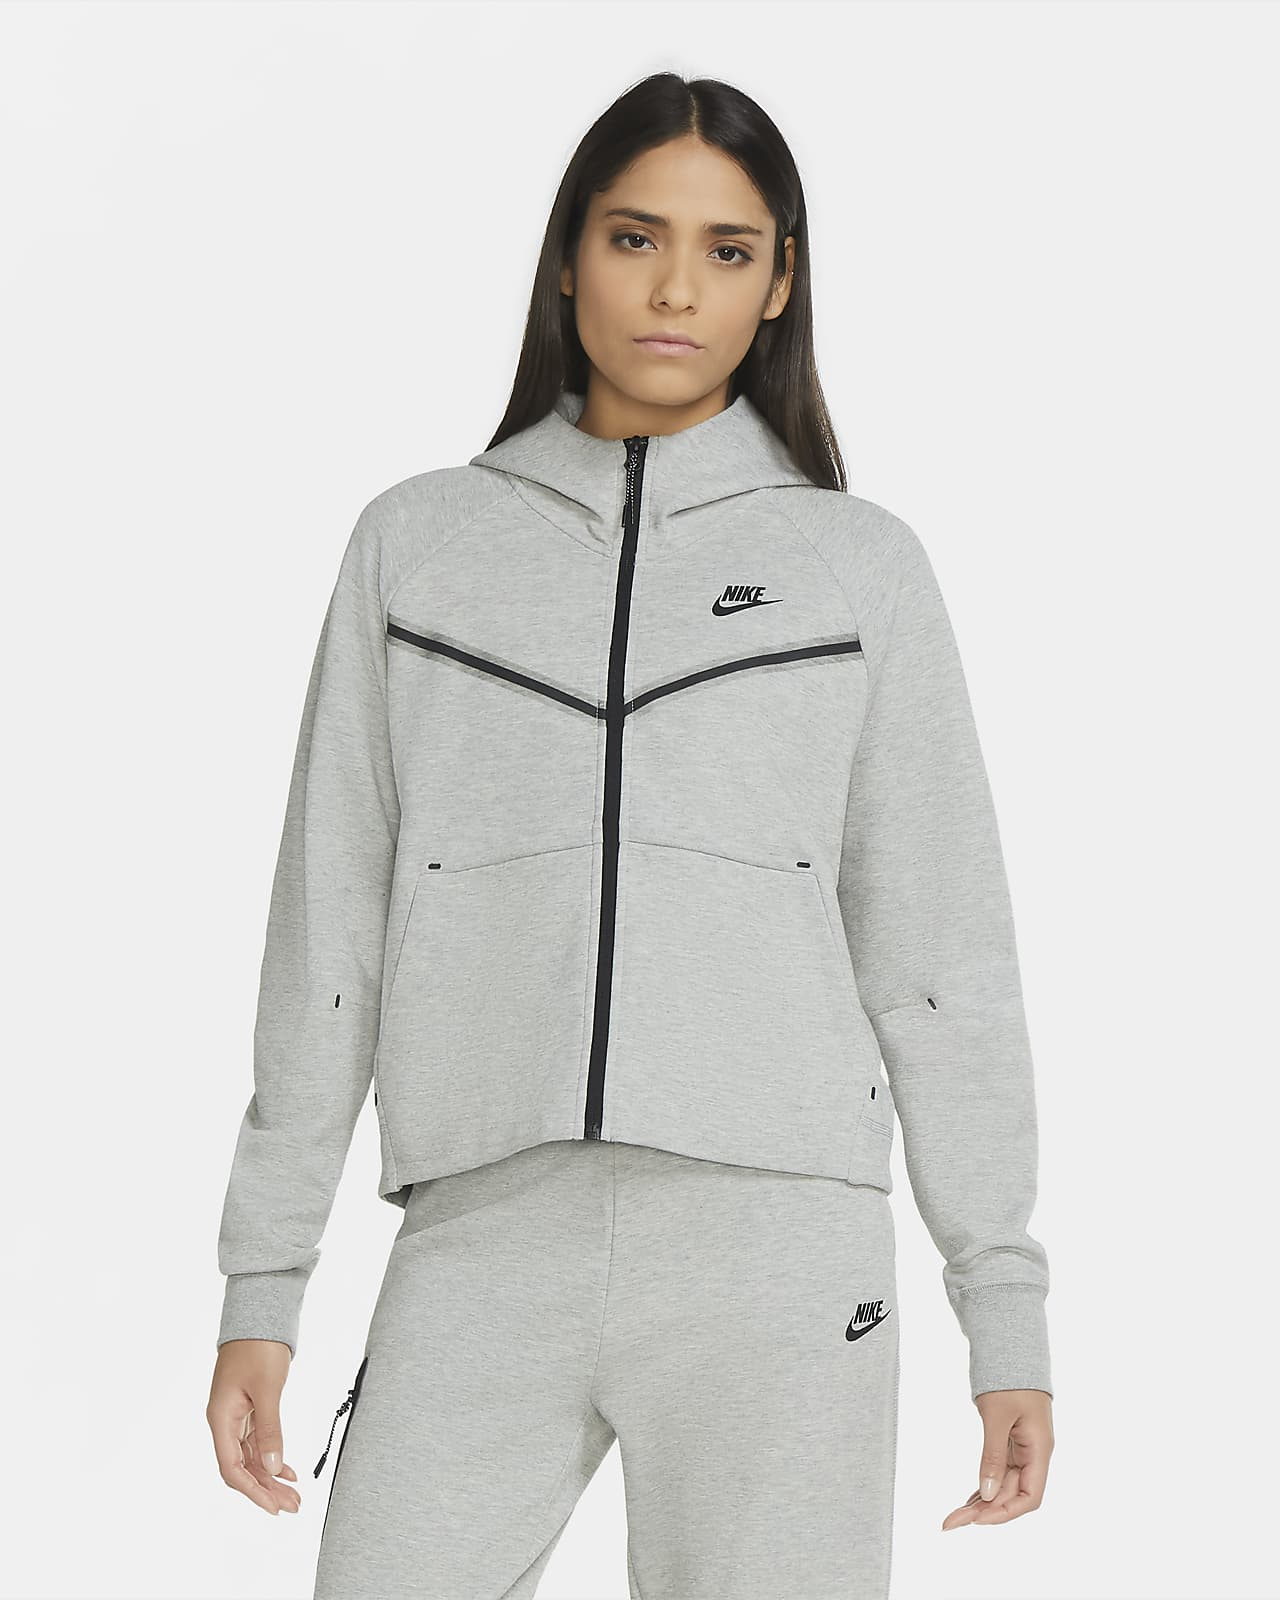 Nike Sportswear Tech Fleece Windrunner Women S Full Zip Hoodie Nike Gb